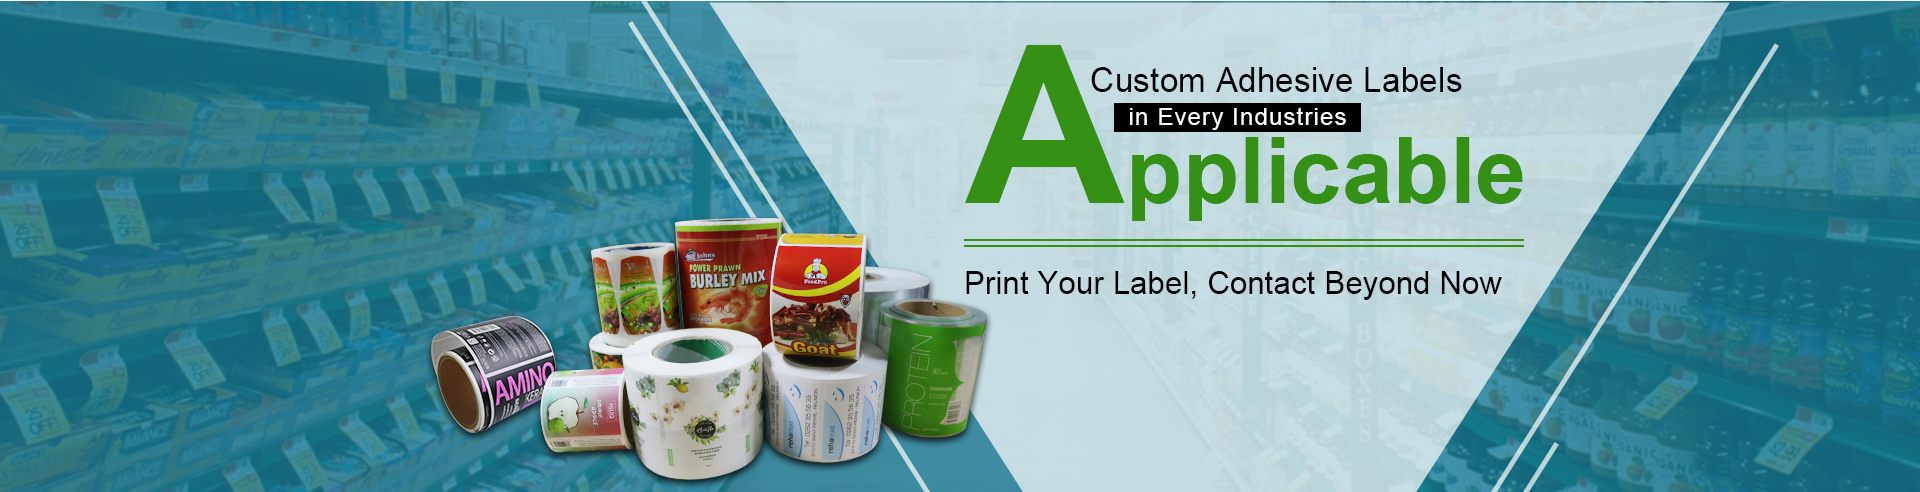 Custom Round Sticker Roll Personalized Permanent Waterproof Round Circle Vinyl Sticker Product Logo Label Printing.jpg